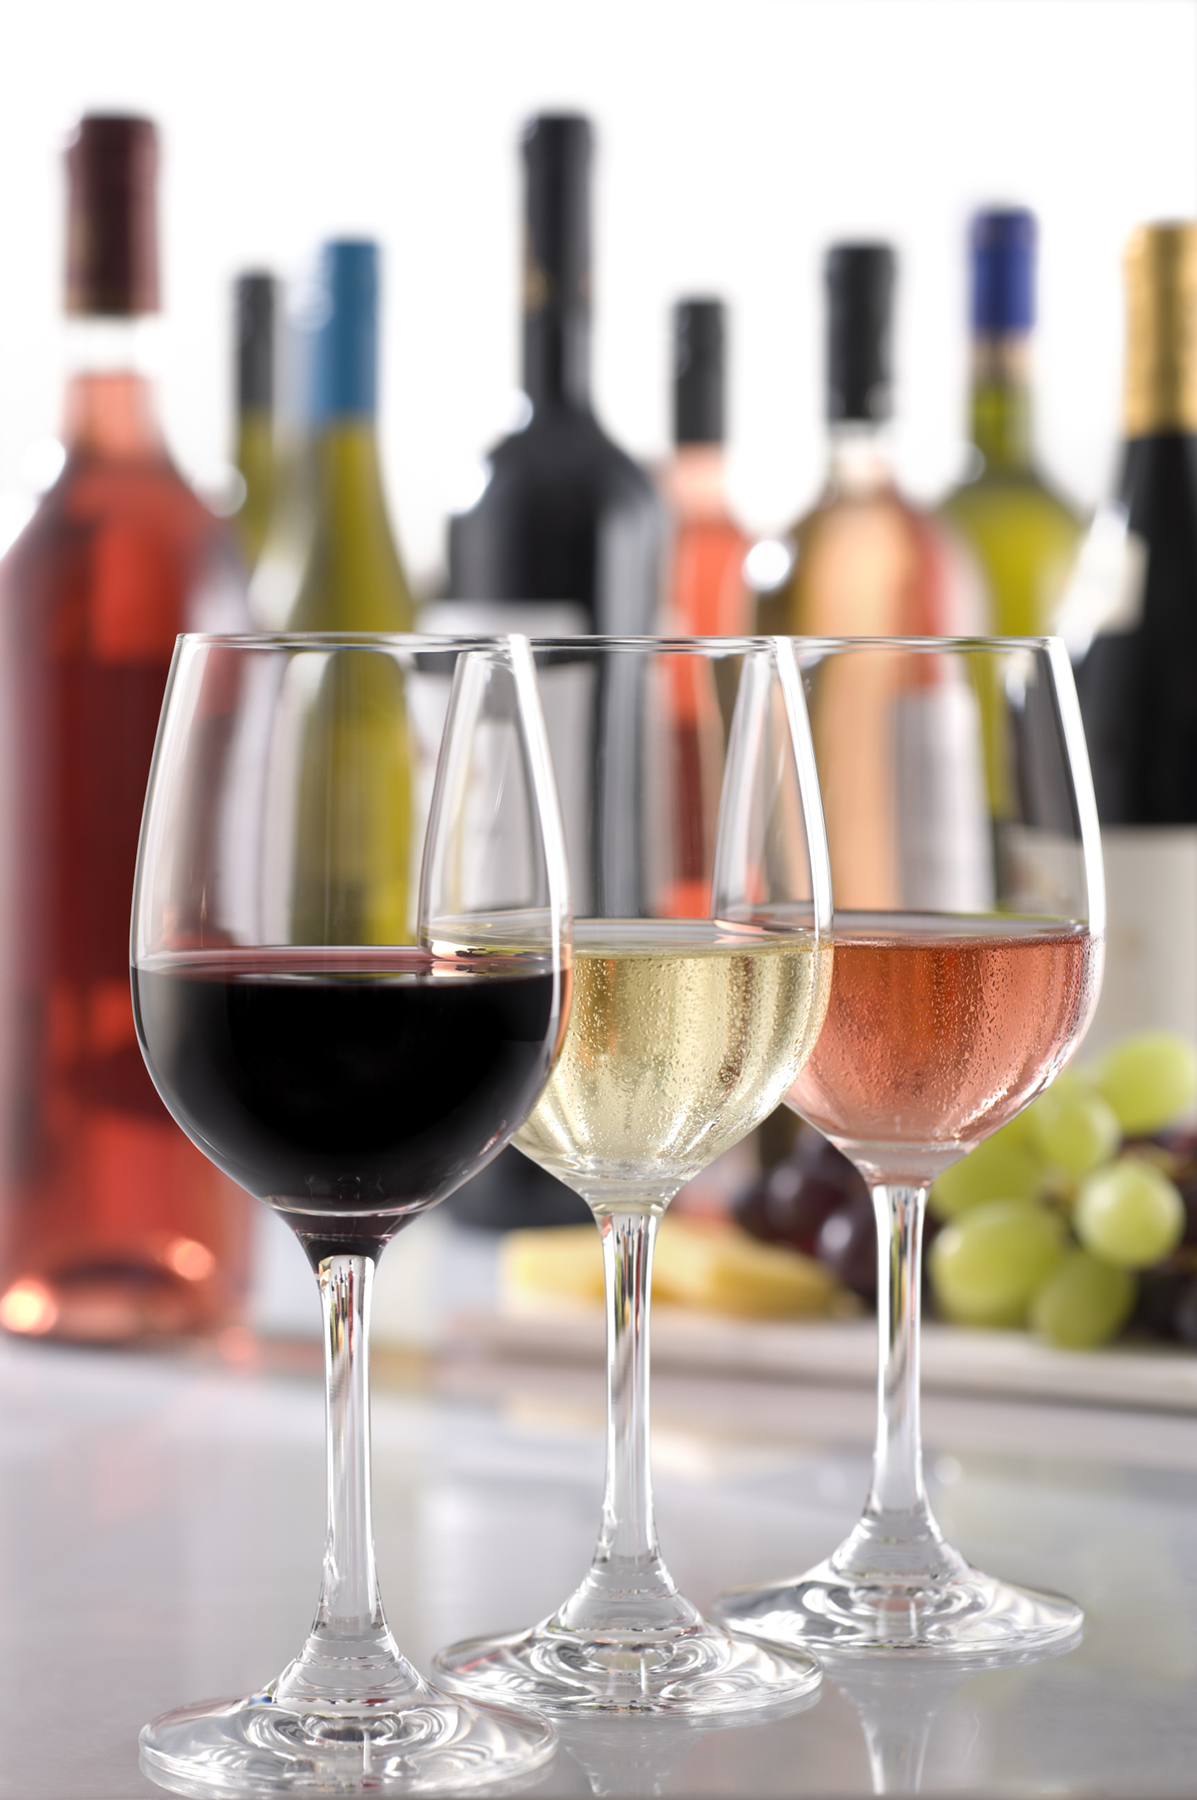 Glasses of red, white and rosé wines at bar